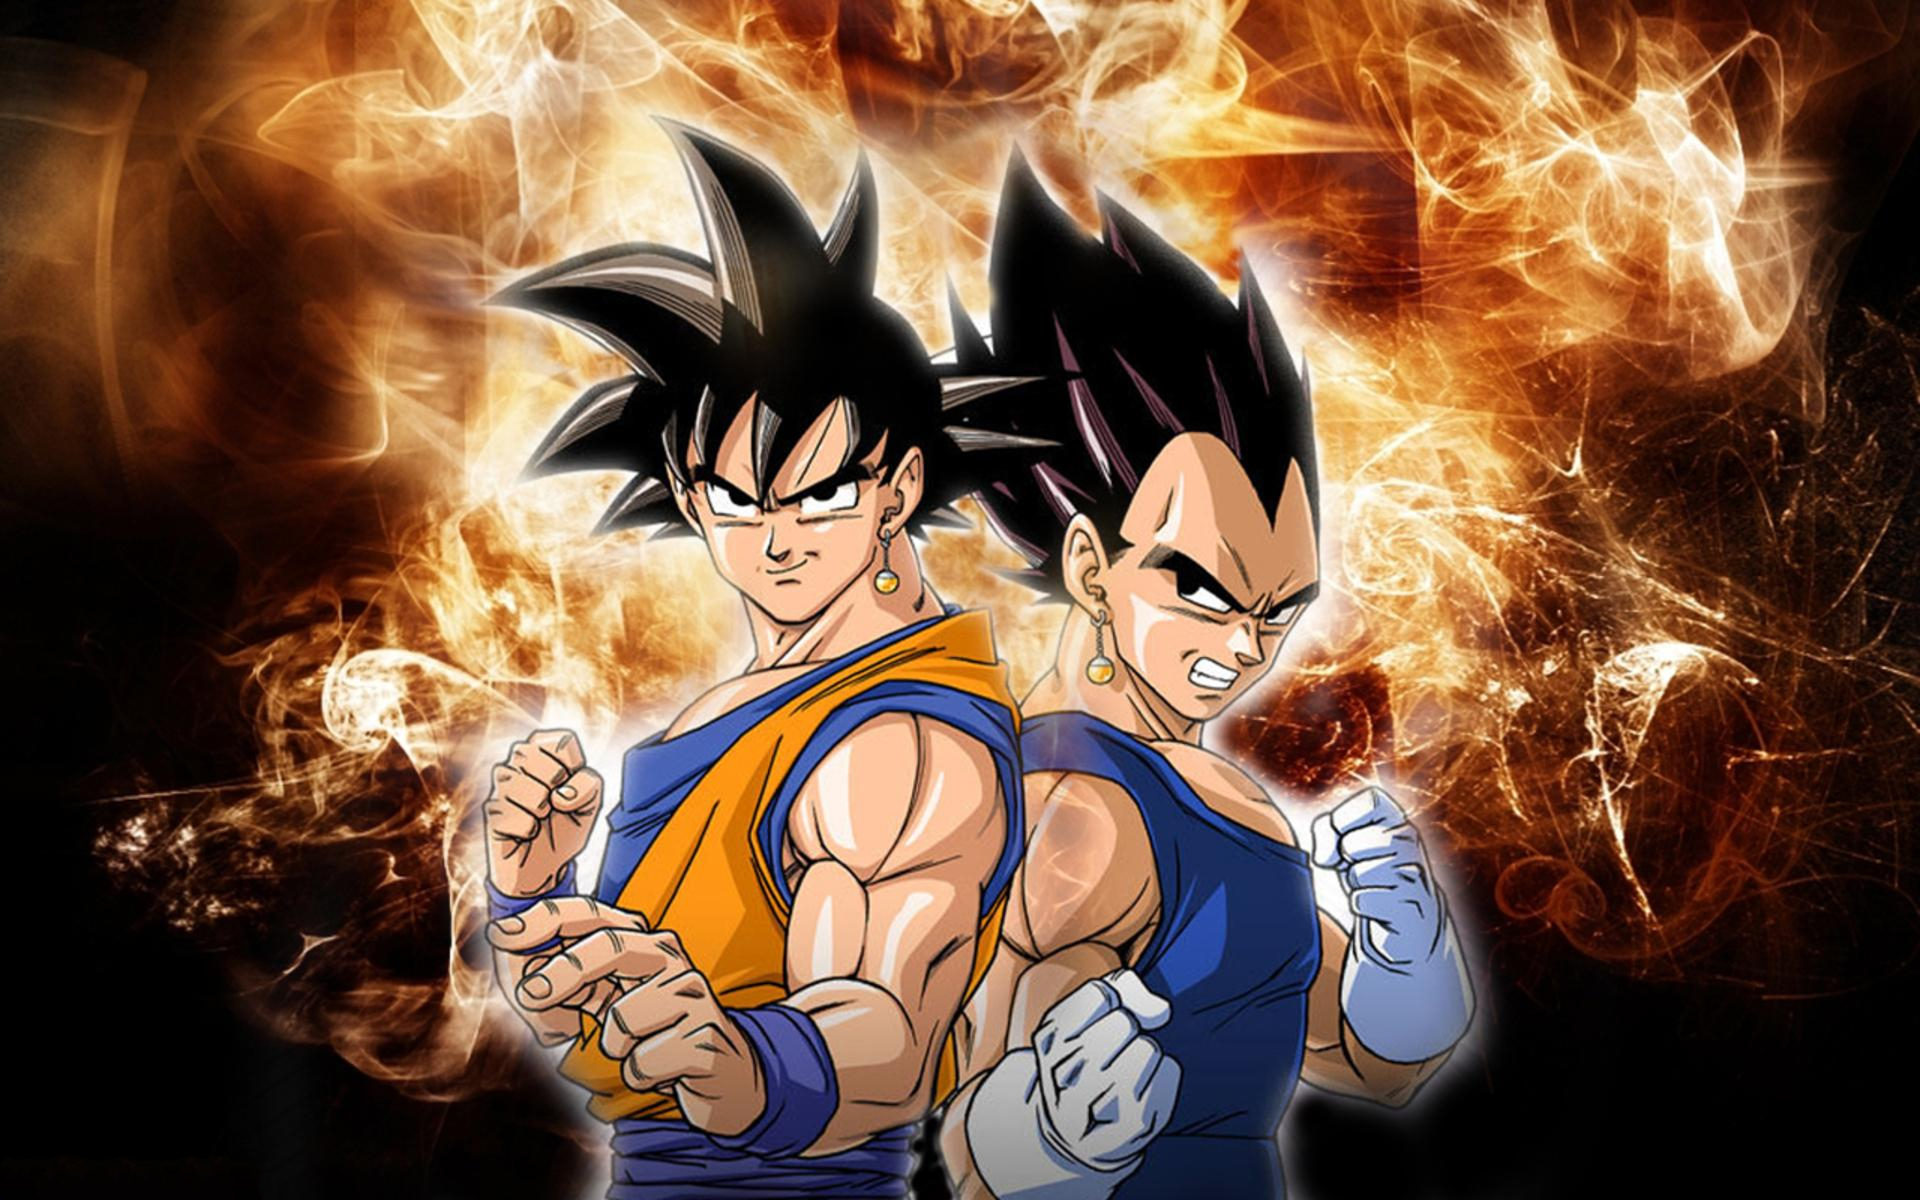 Free download goku dragon ball z backgrounds pixelstalk net - 3d wallpaper of dragon ball z ...